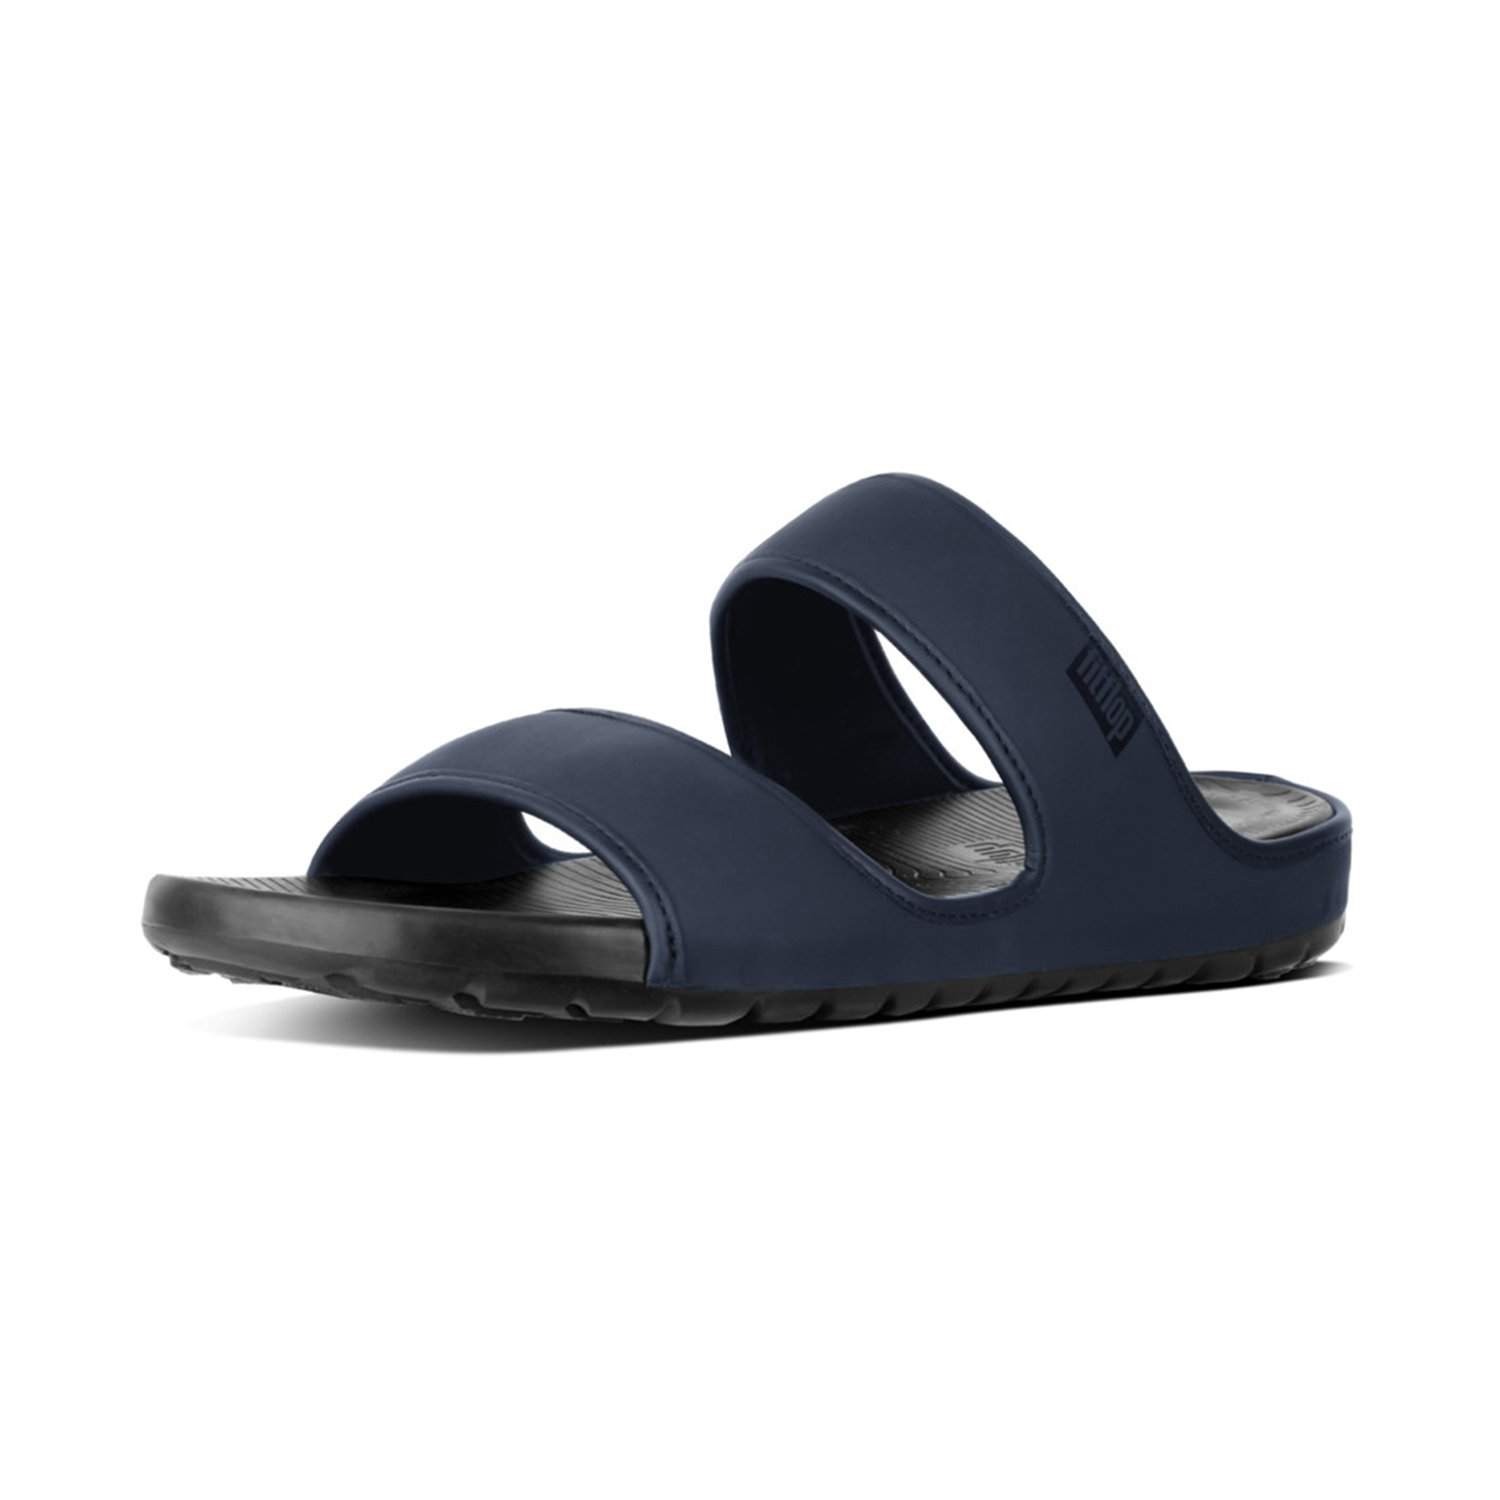 Fitflop Lido TM Double Slide Sandals In Neoprene, Chanclas para Hombre